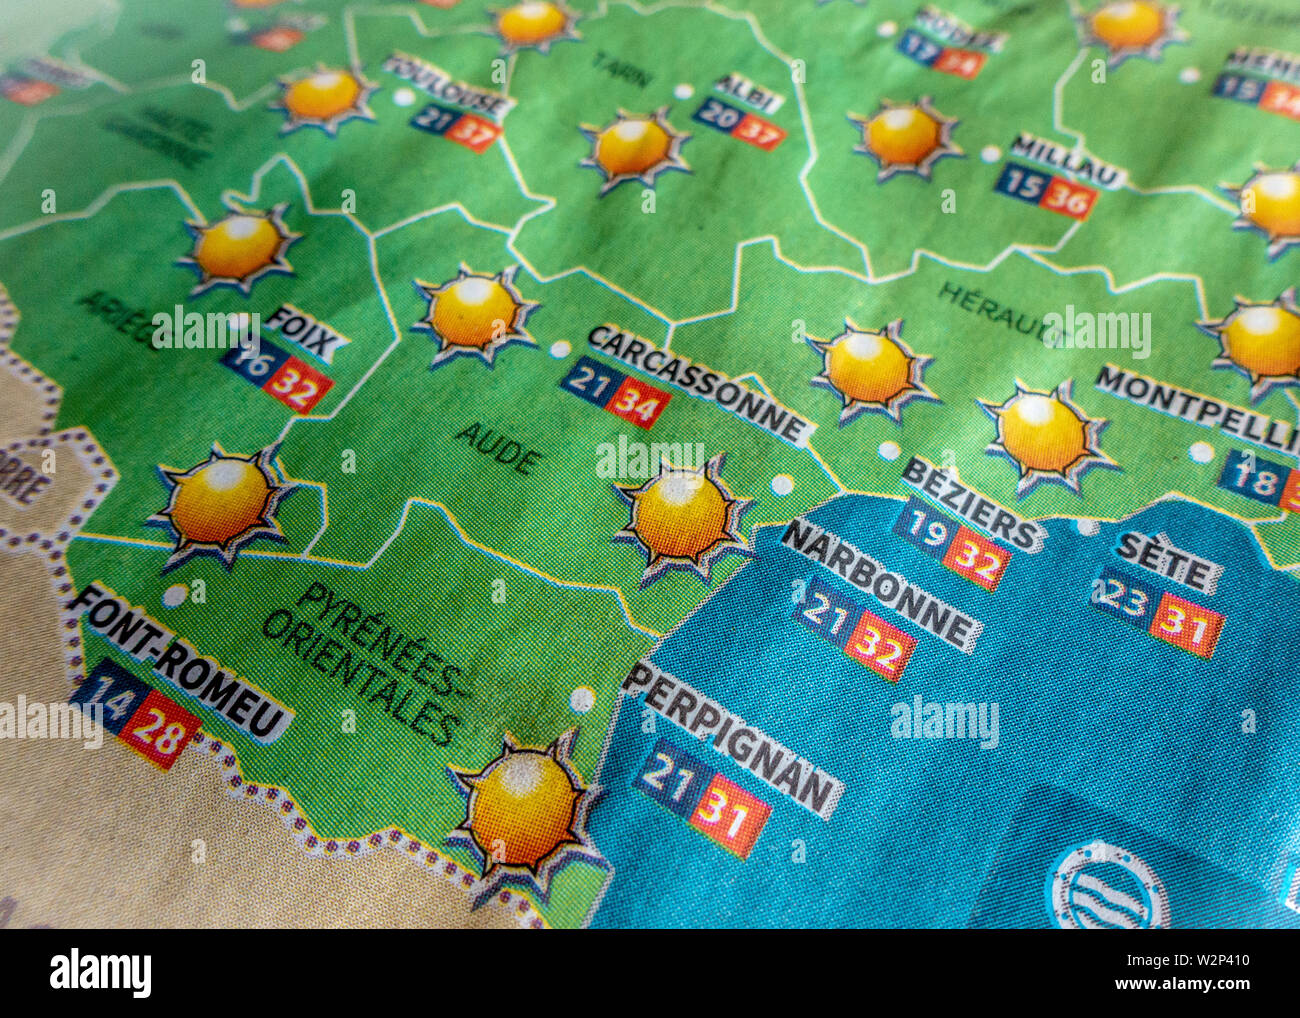 Map Of The South Of France.Newspaper Heatwave Weather Predictions Map For The South Of France